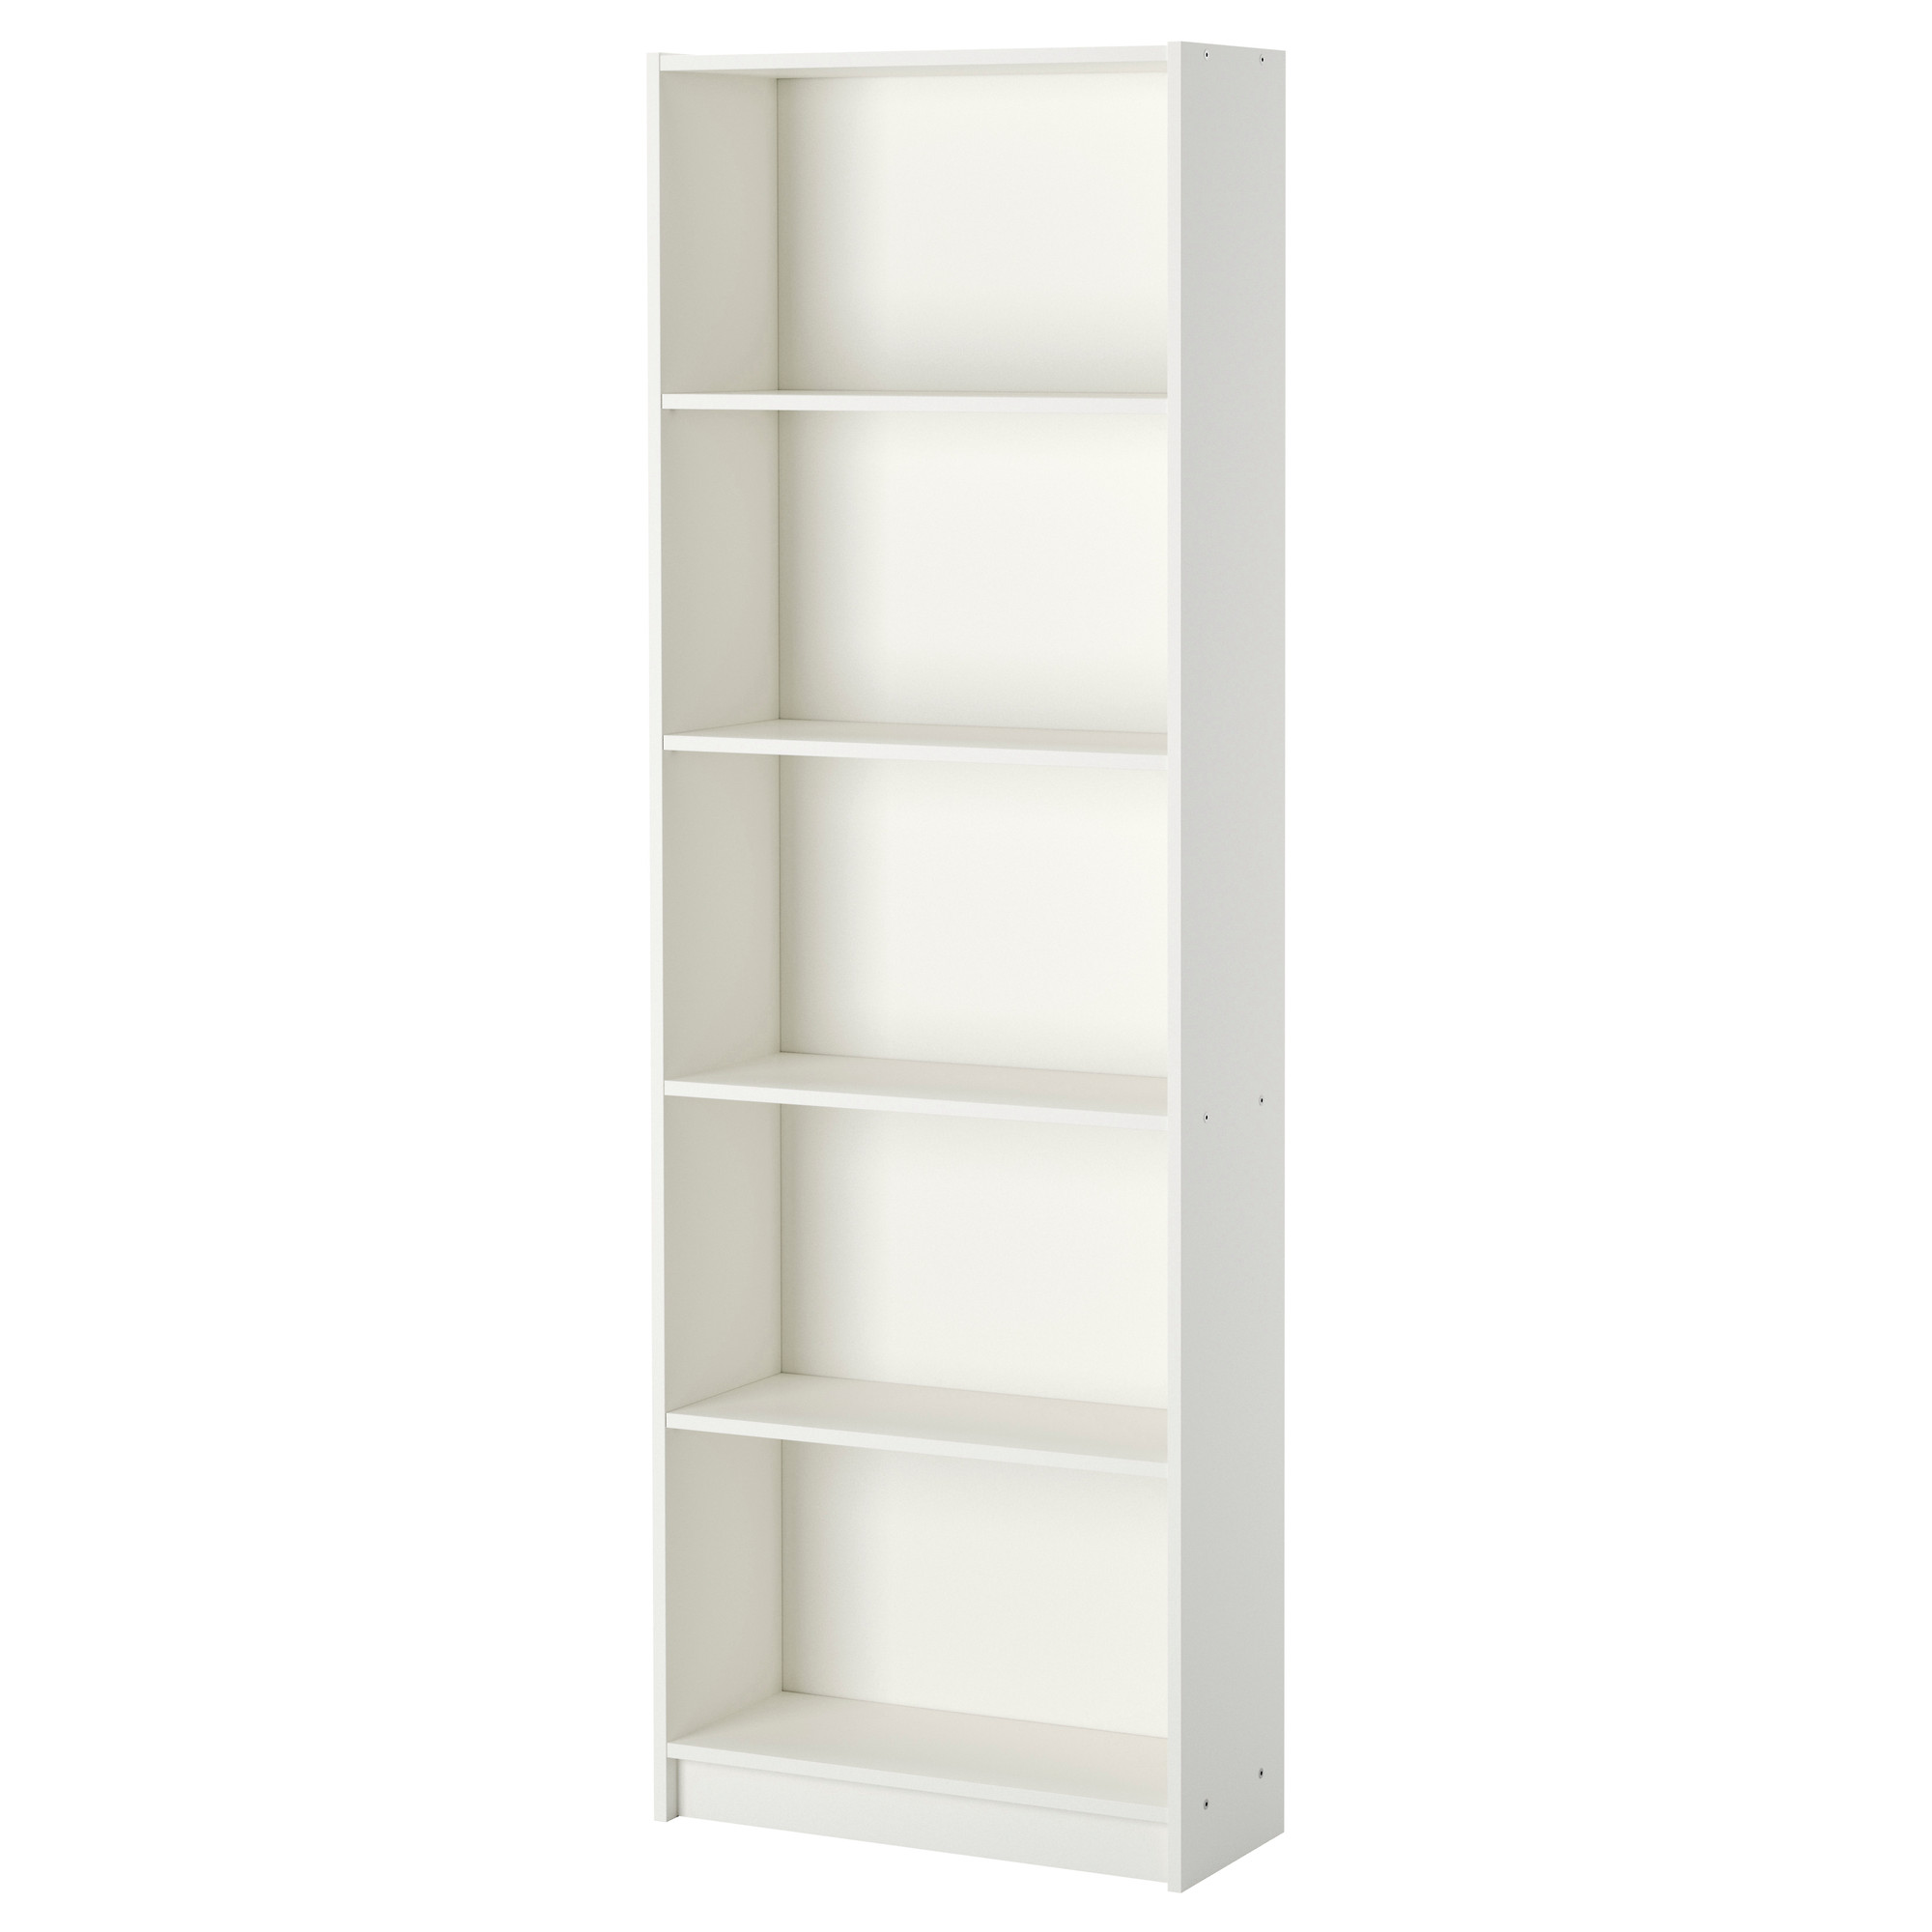 Master GERSBY Bookcase - IKEA tall white bookcase